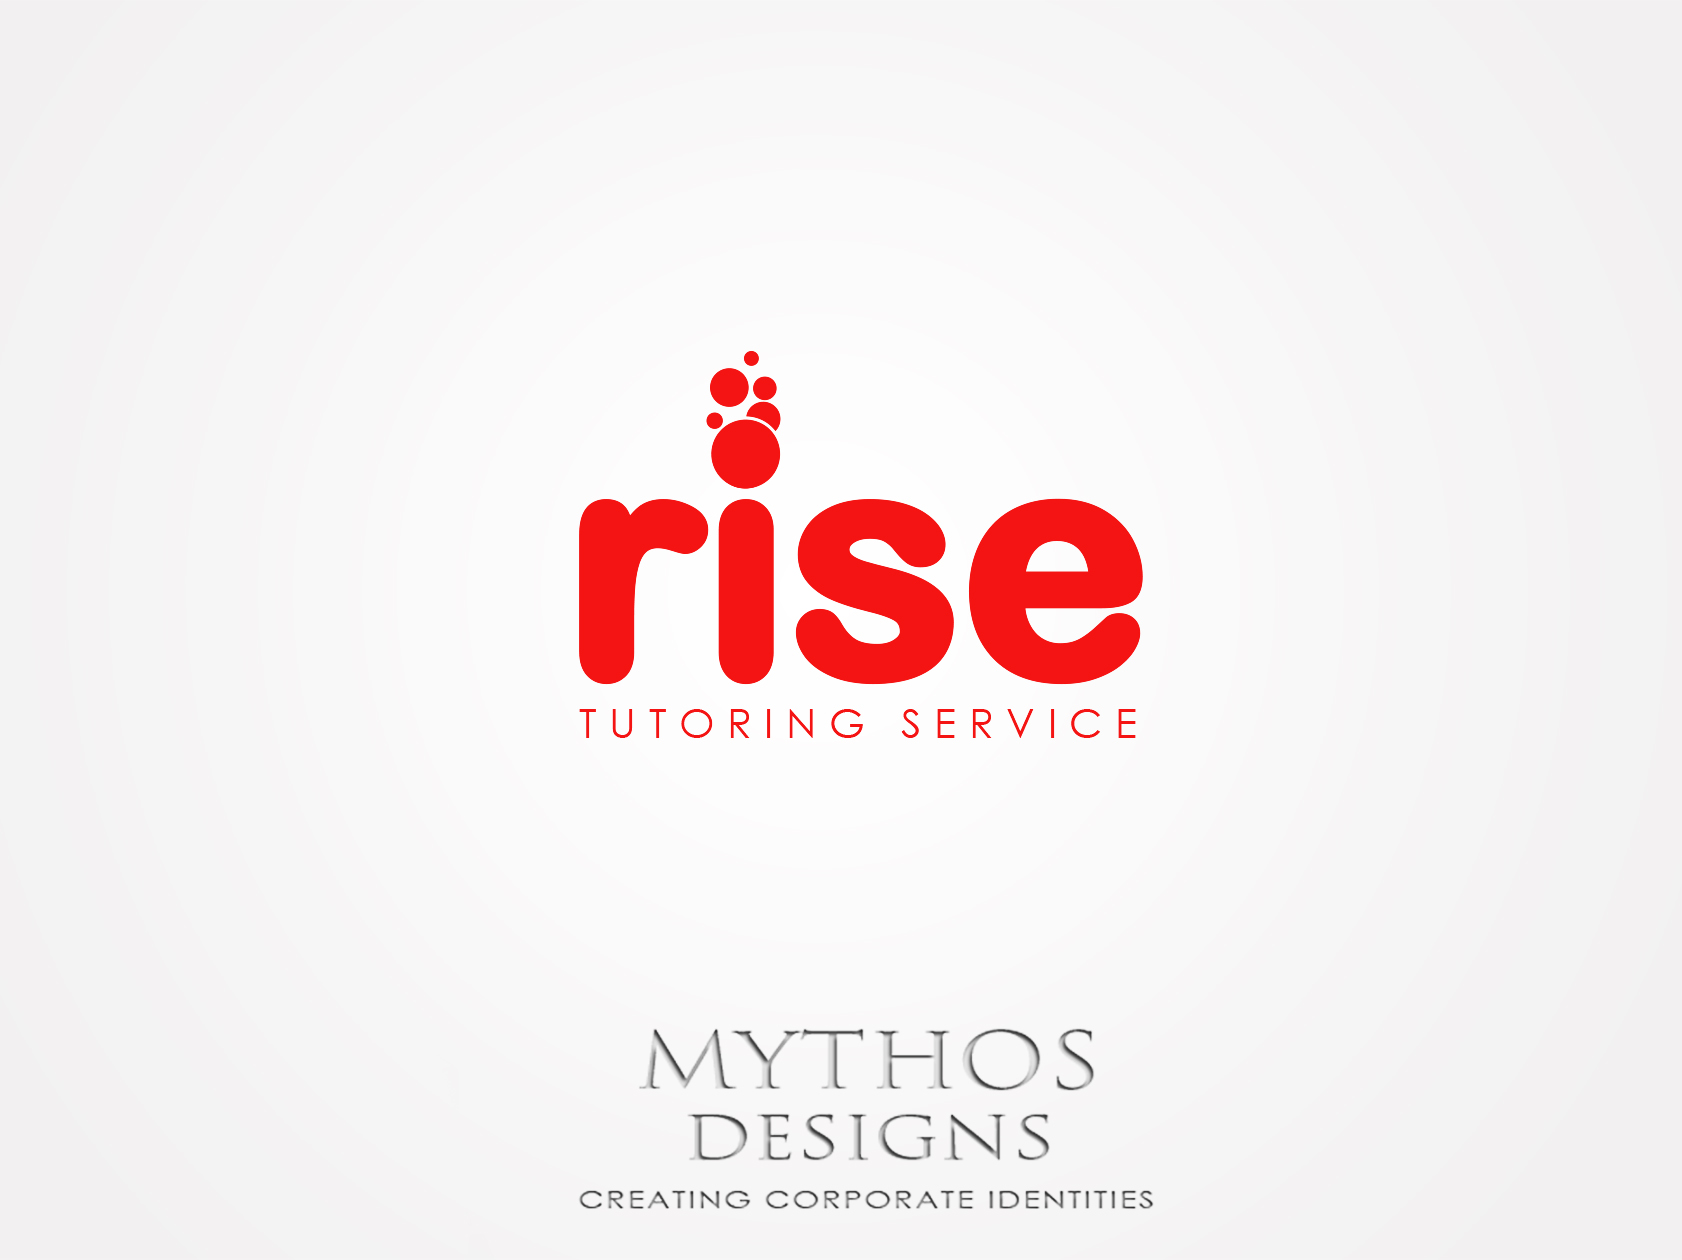 Logo Design by Mythos Designs - Entry No. 239 in the Logo Design Contest Imaginative Logo Design for Rise Tutoring Service.